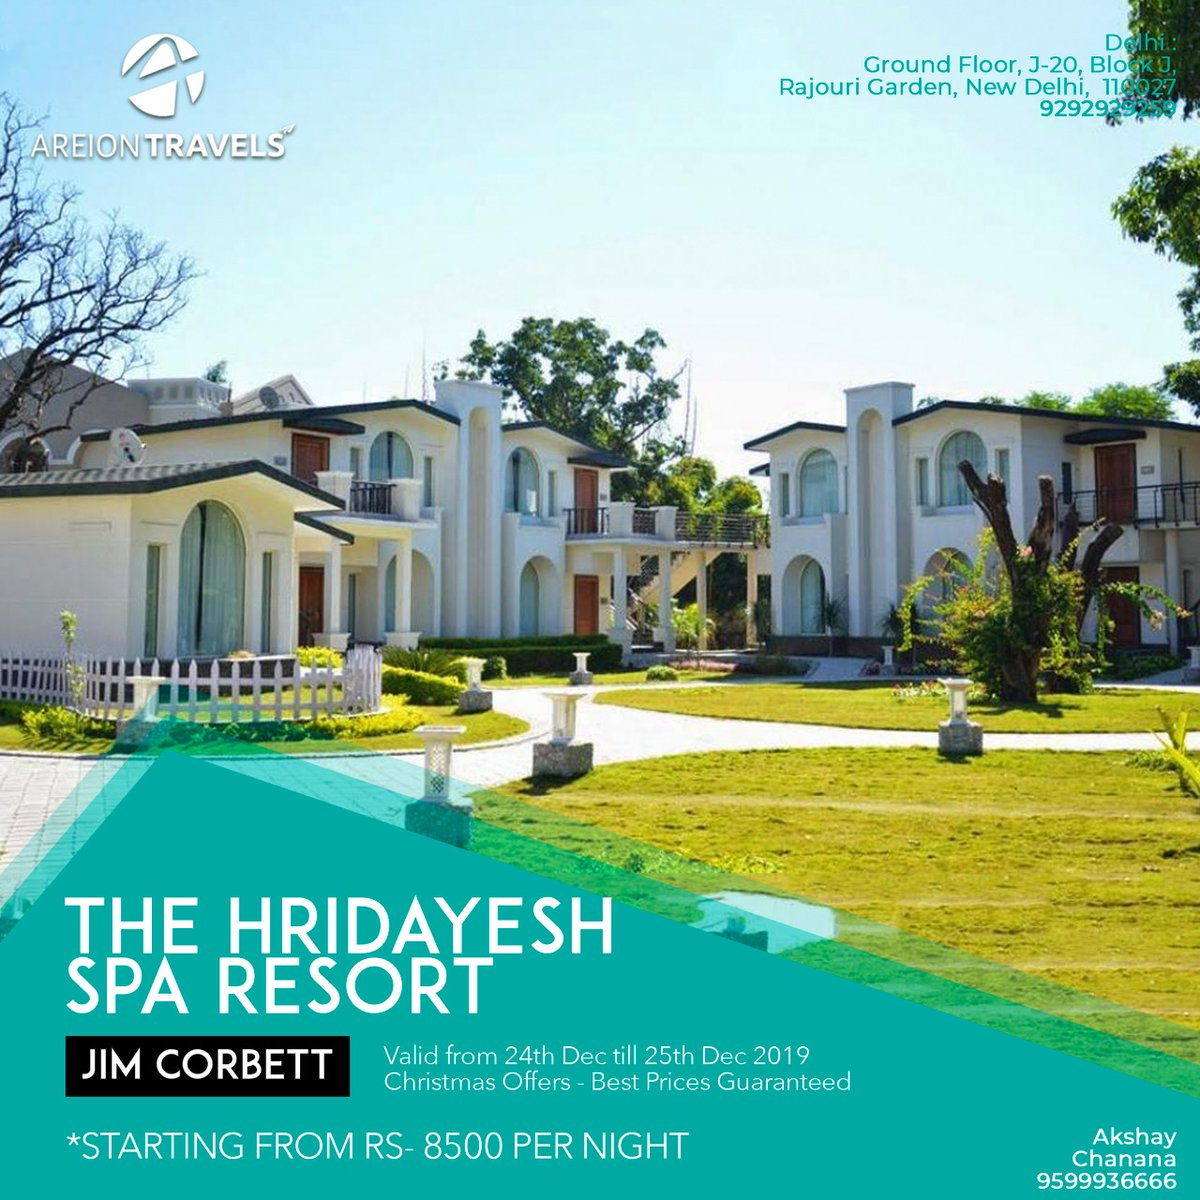 Experience luxury in wilderness with The Hridayesh Spa Resort at Corbett.   Nestled amongst the green expanse, this resort is an oasis of tranquility. Get best deals ever for this property with Areion Travels.  #Travel #AreionTravels #Corbett #CorbettNationalPark #ExploreTheWild pic.twitter.com/mFMF4AIAVf